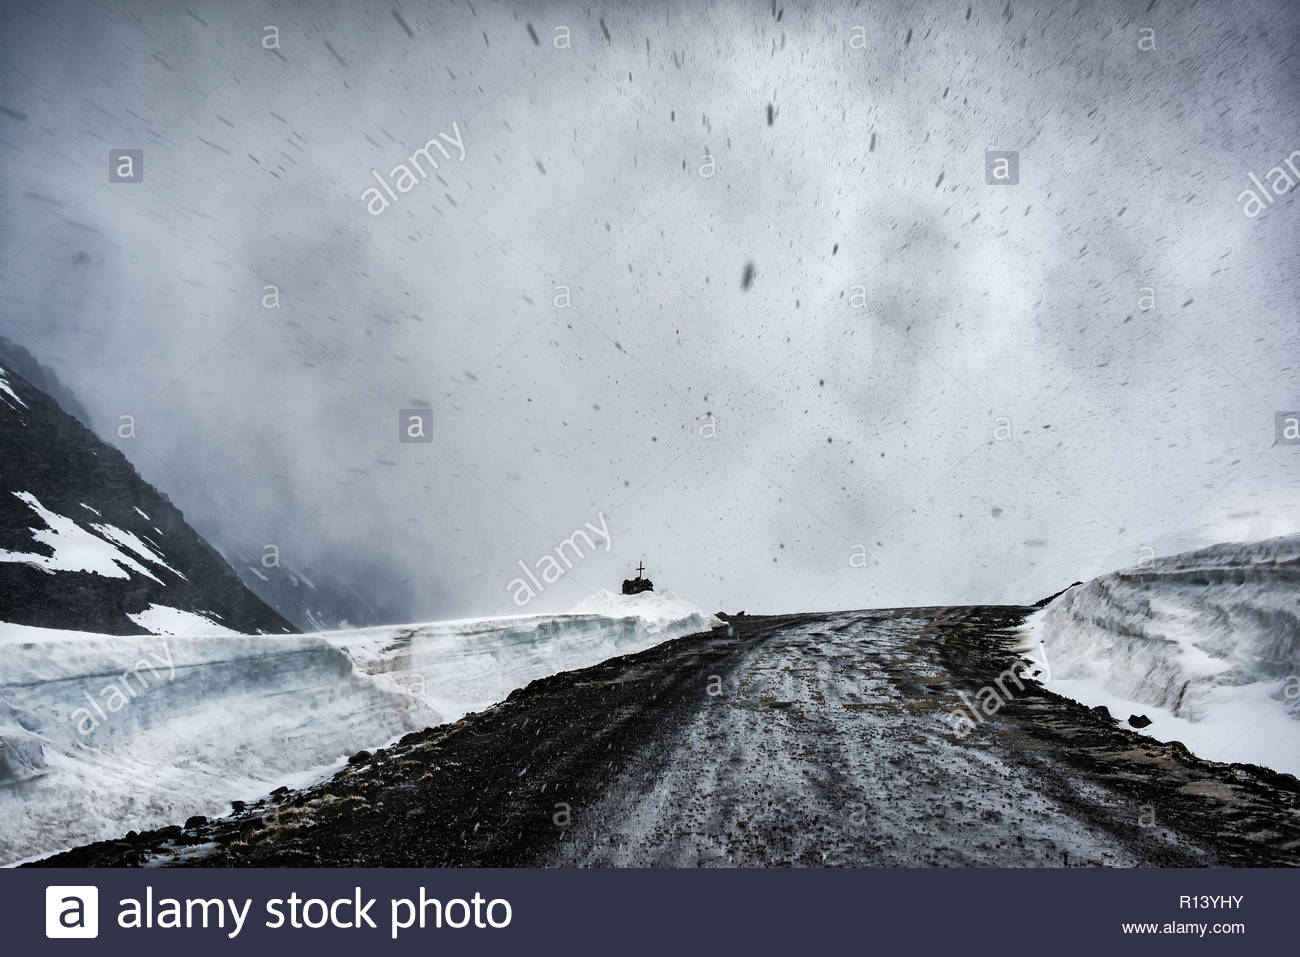 Stormy weather - Stock Image